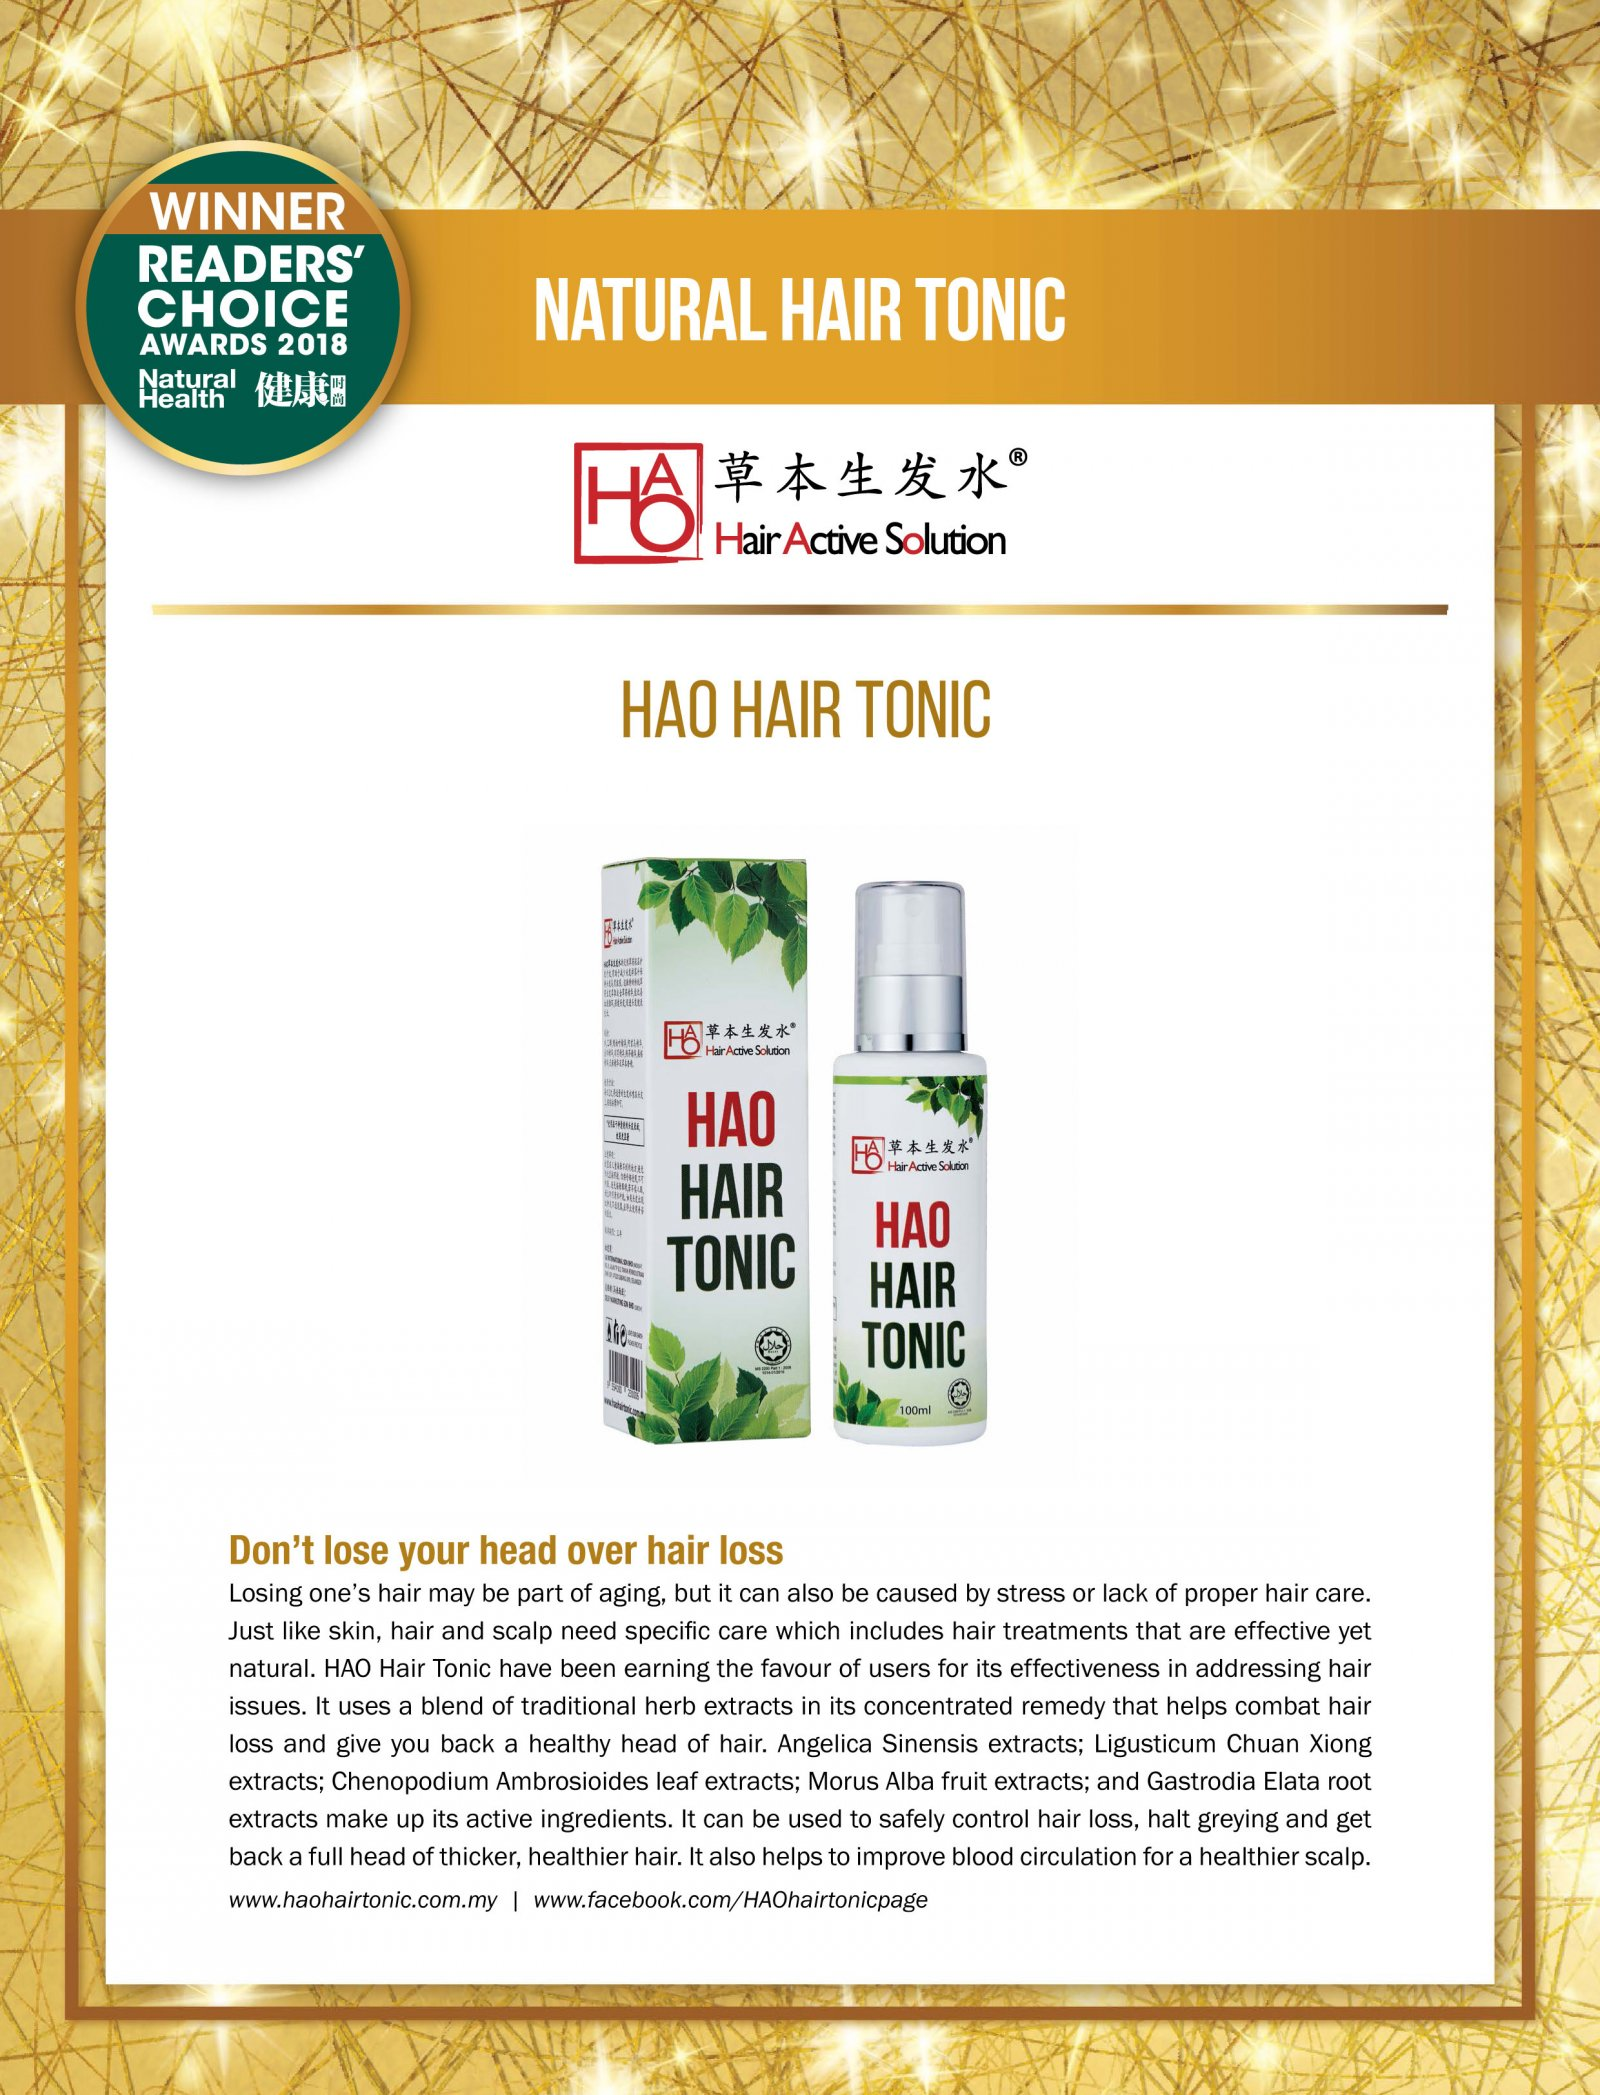 Readers' Choice Award 2018 - The Best Natural Hair Tonic